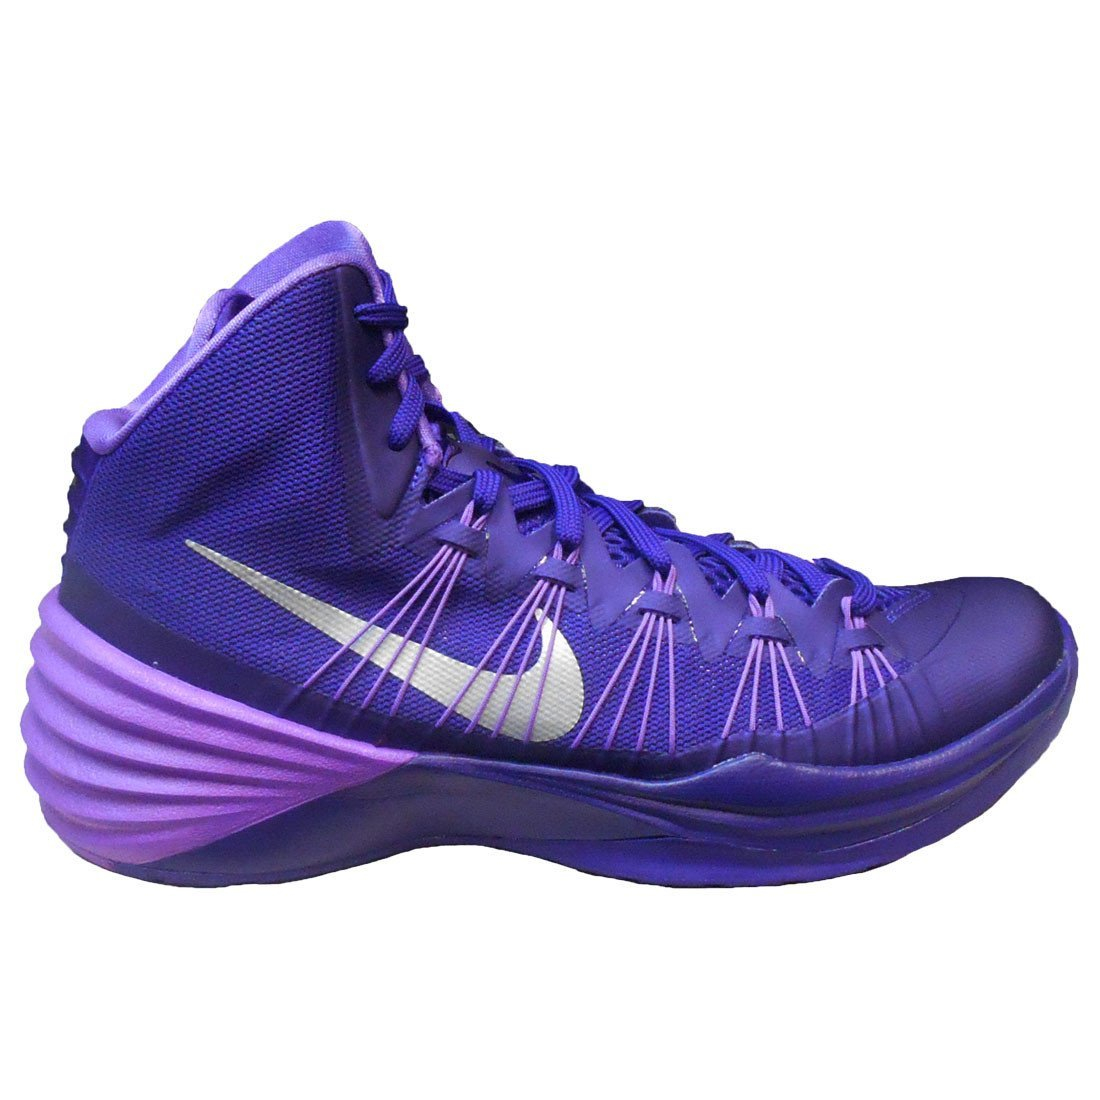 0bee6b62ef72 Amazon.com  Nike Hyperdunk 2013 TB Women s Basketball Shoe (15 ...